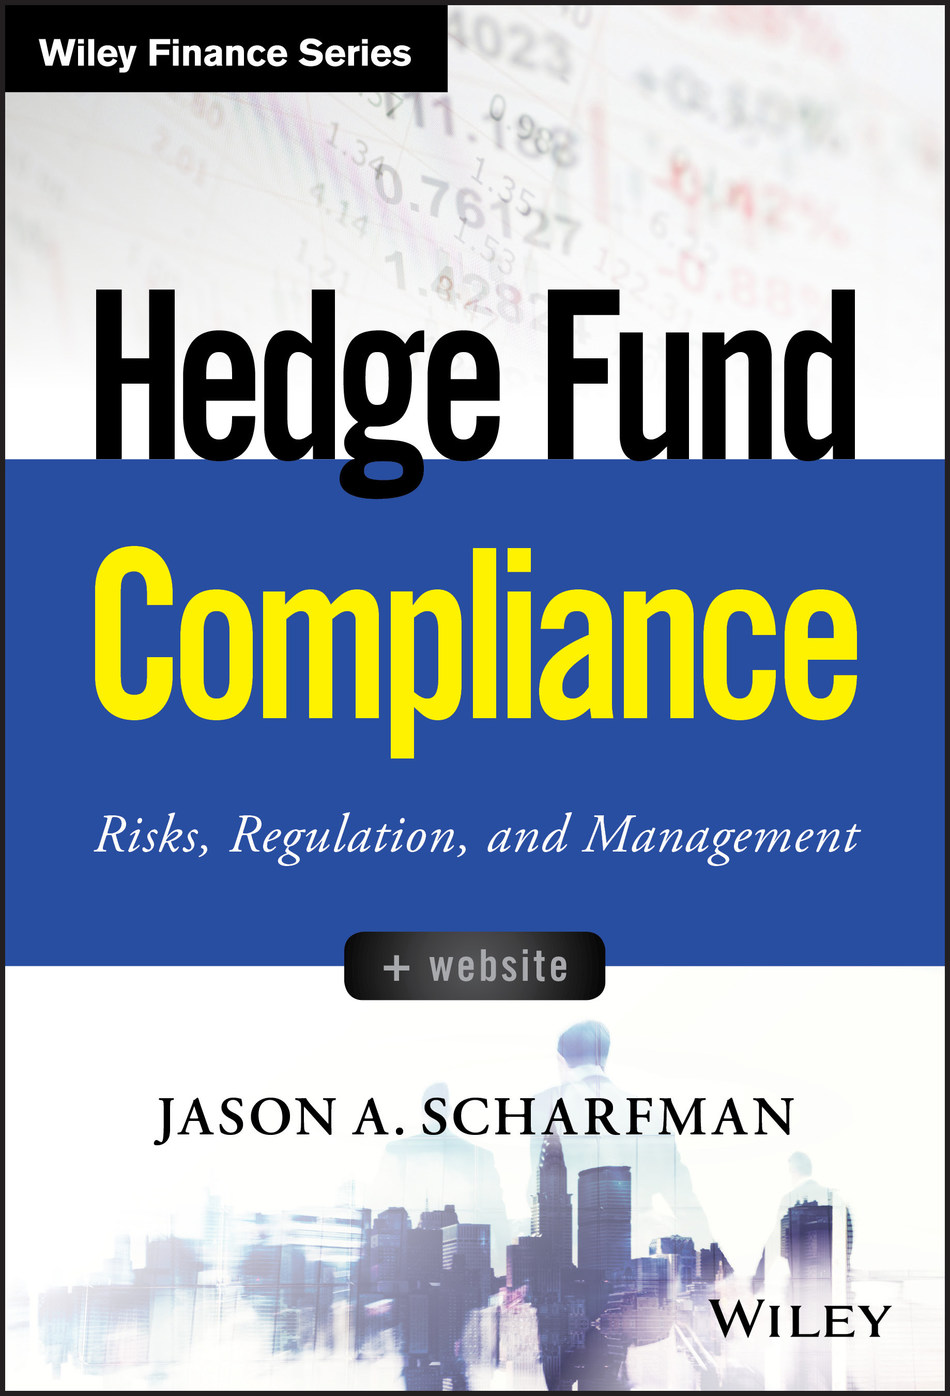 Hedge Fund Compliance: Risks, Regulation, and Management (Wiley Finance) is a new investment book authored by Jason Scharfman (Managing Partner, Corgentum Consulting). It provides investor's, operational due diligence (ODD) professionals, hedge funds and their service providers with practical guidance for the development and analysis of a hedge fund's global compliance program.